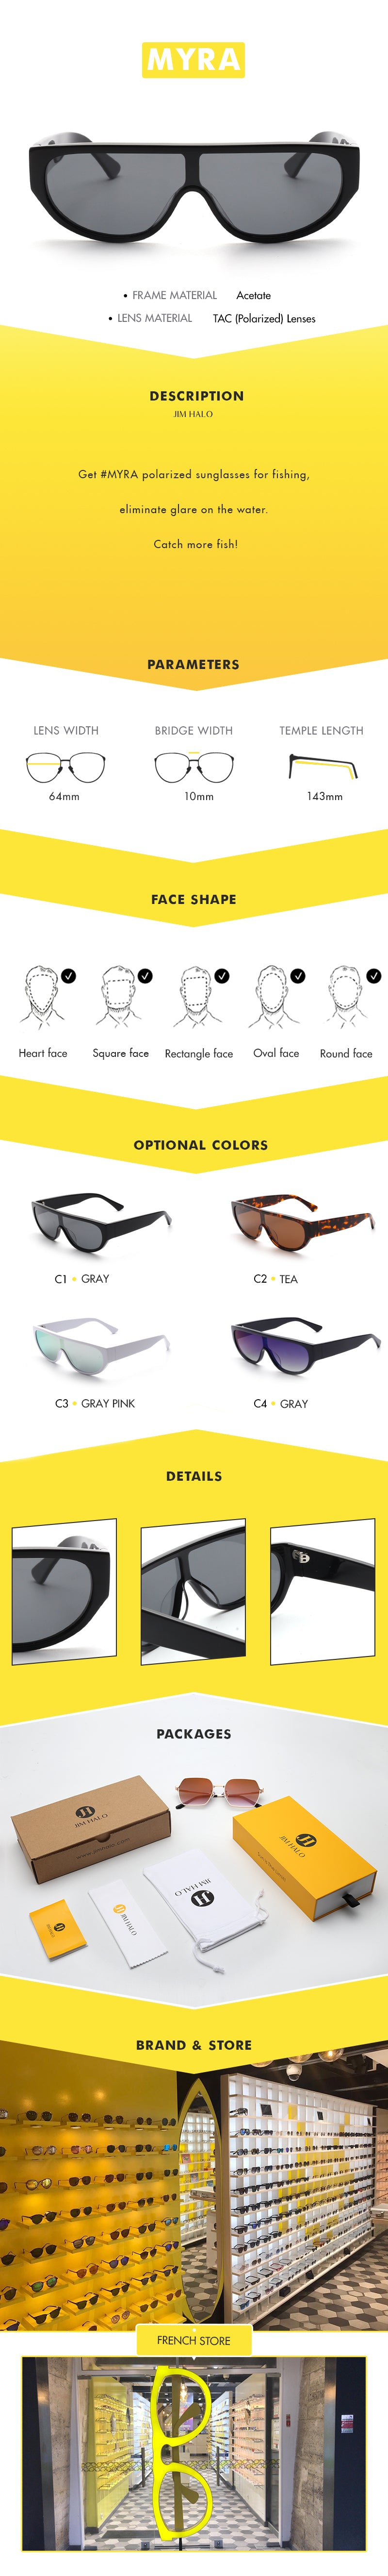 Get #MYRA polarized sunglasses for fishing, eliminate glare on the water. Catch more fish!